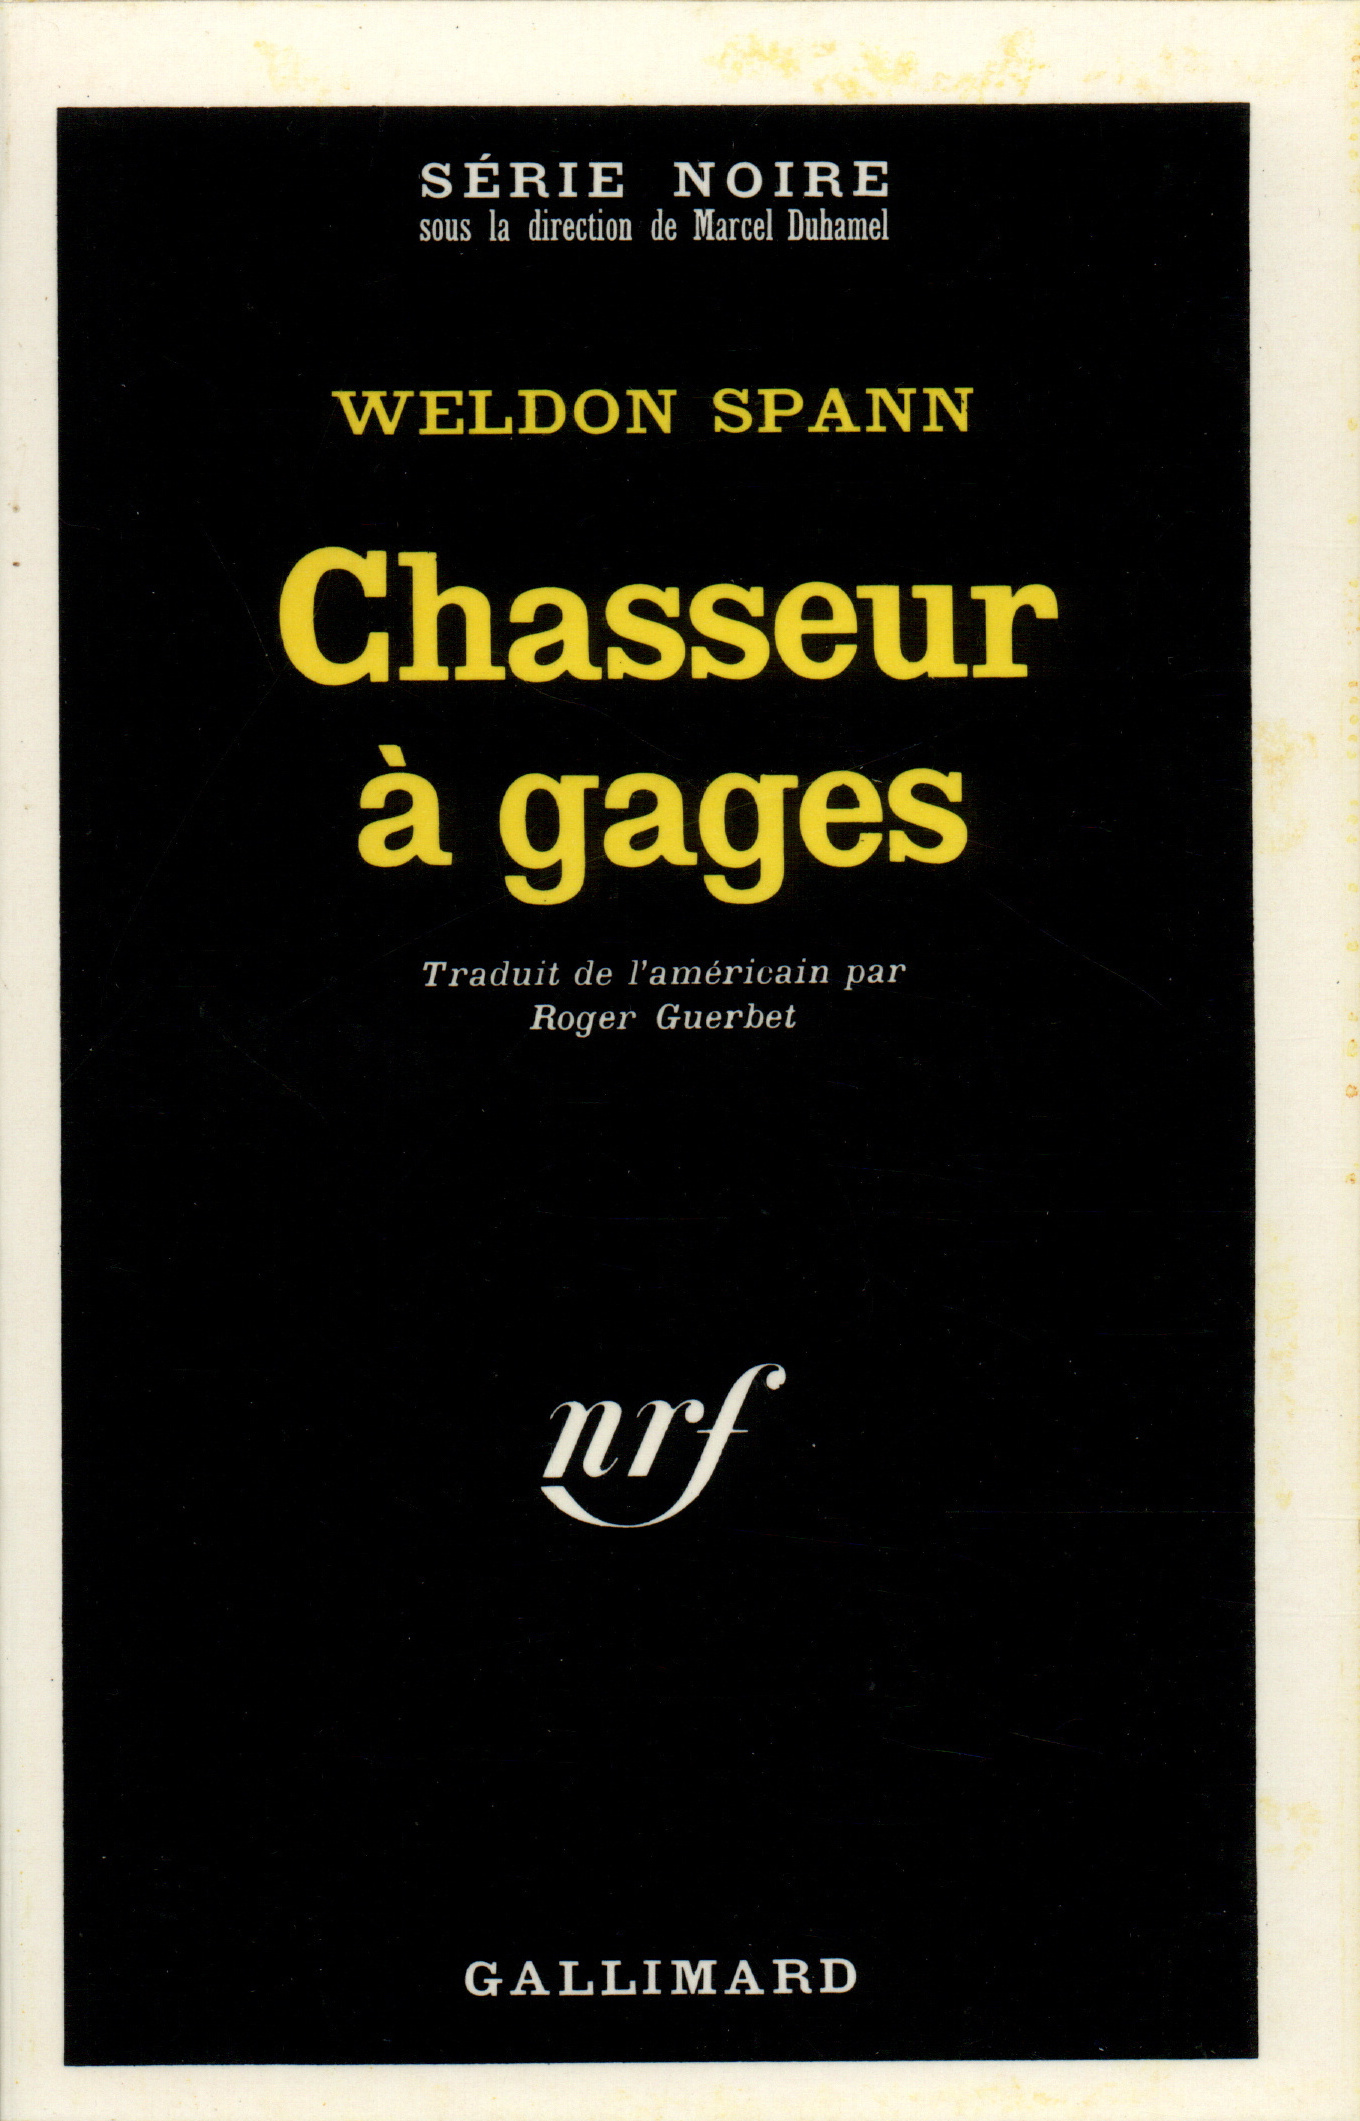 CHASSEUR A GAGES